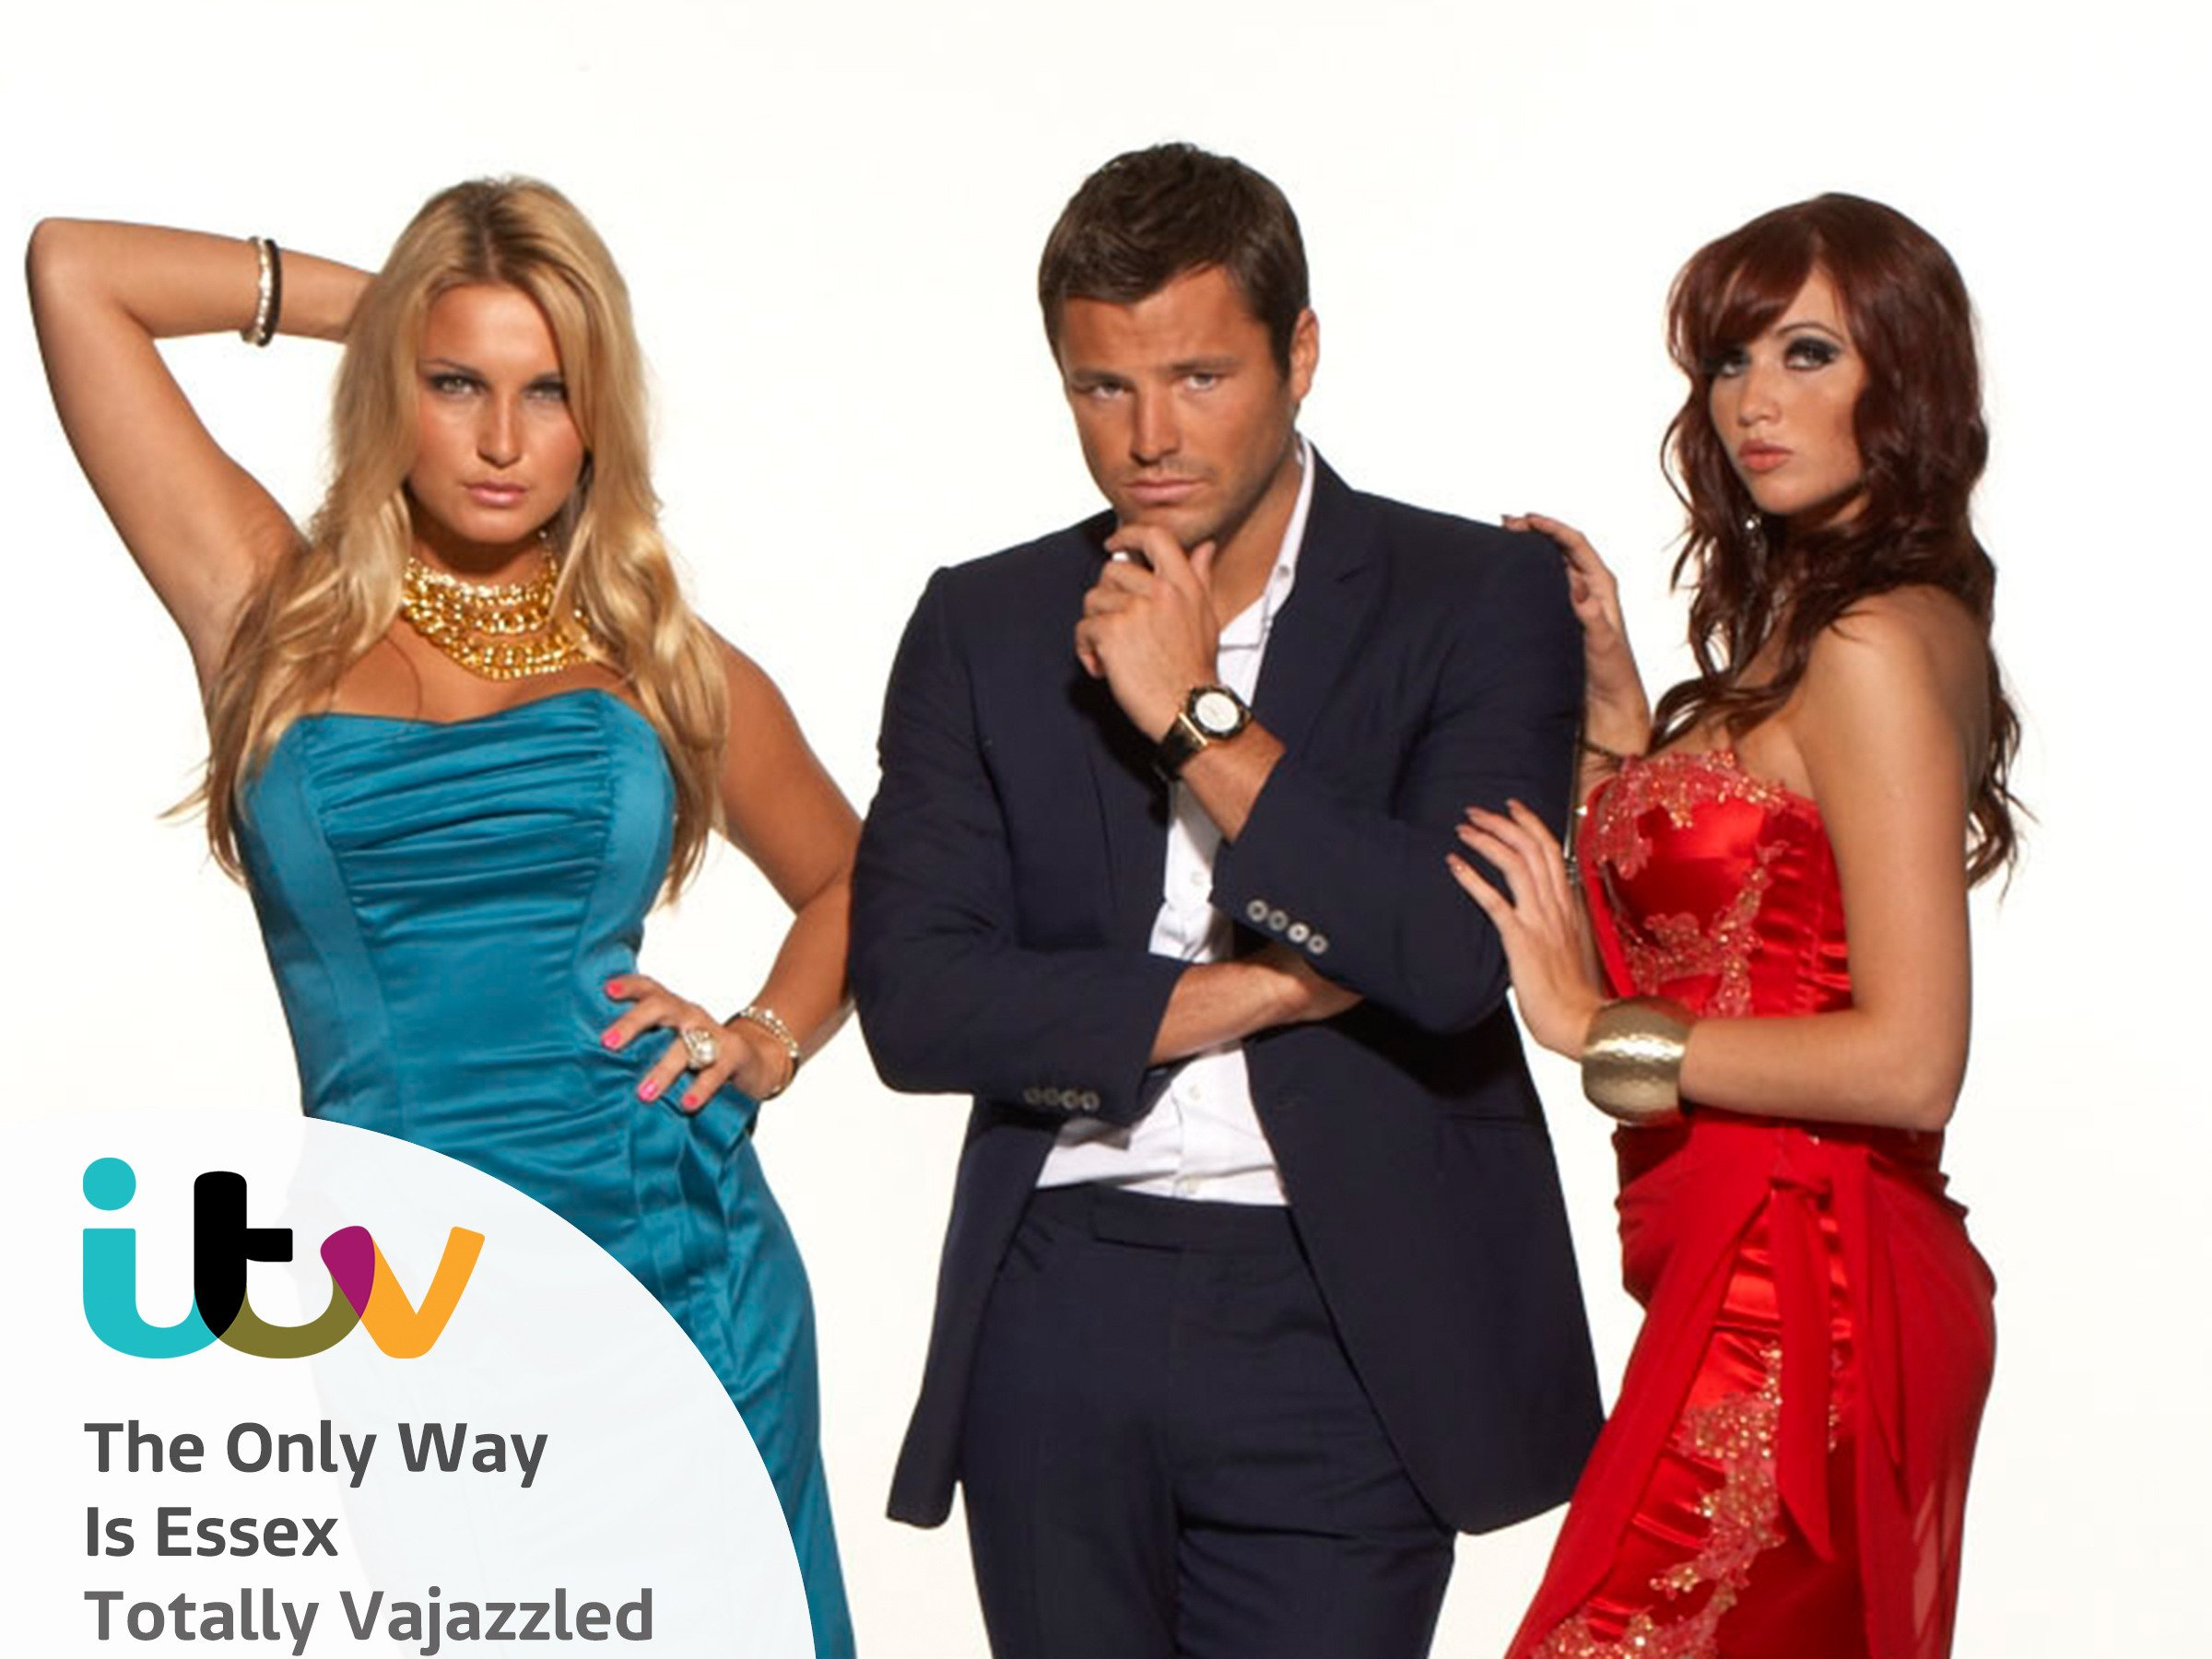 Amazon.co.uk: Watch The Only Way Is Essex: Totally Vajazzled | Prime Video